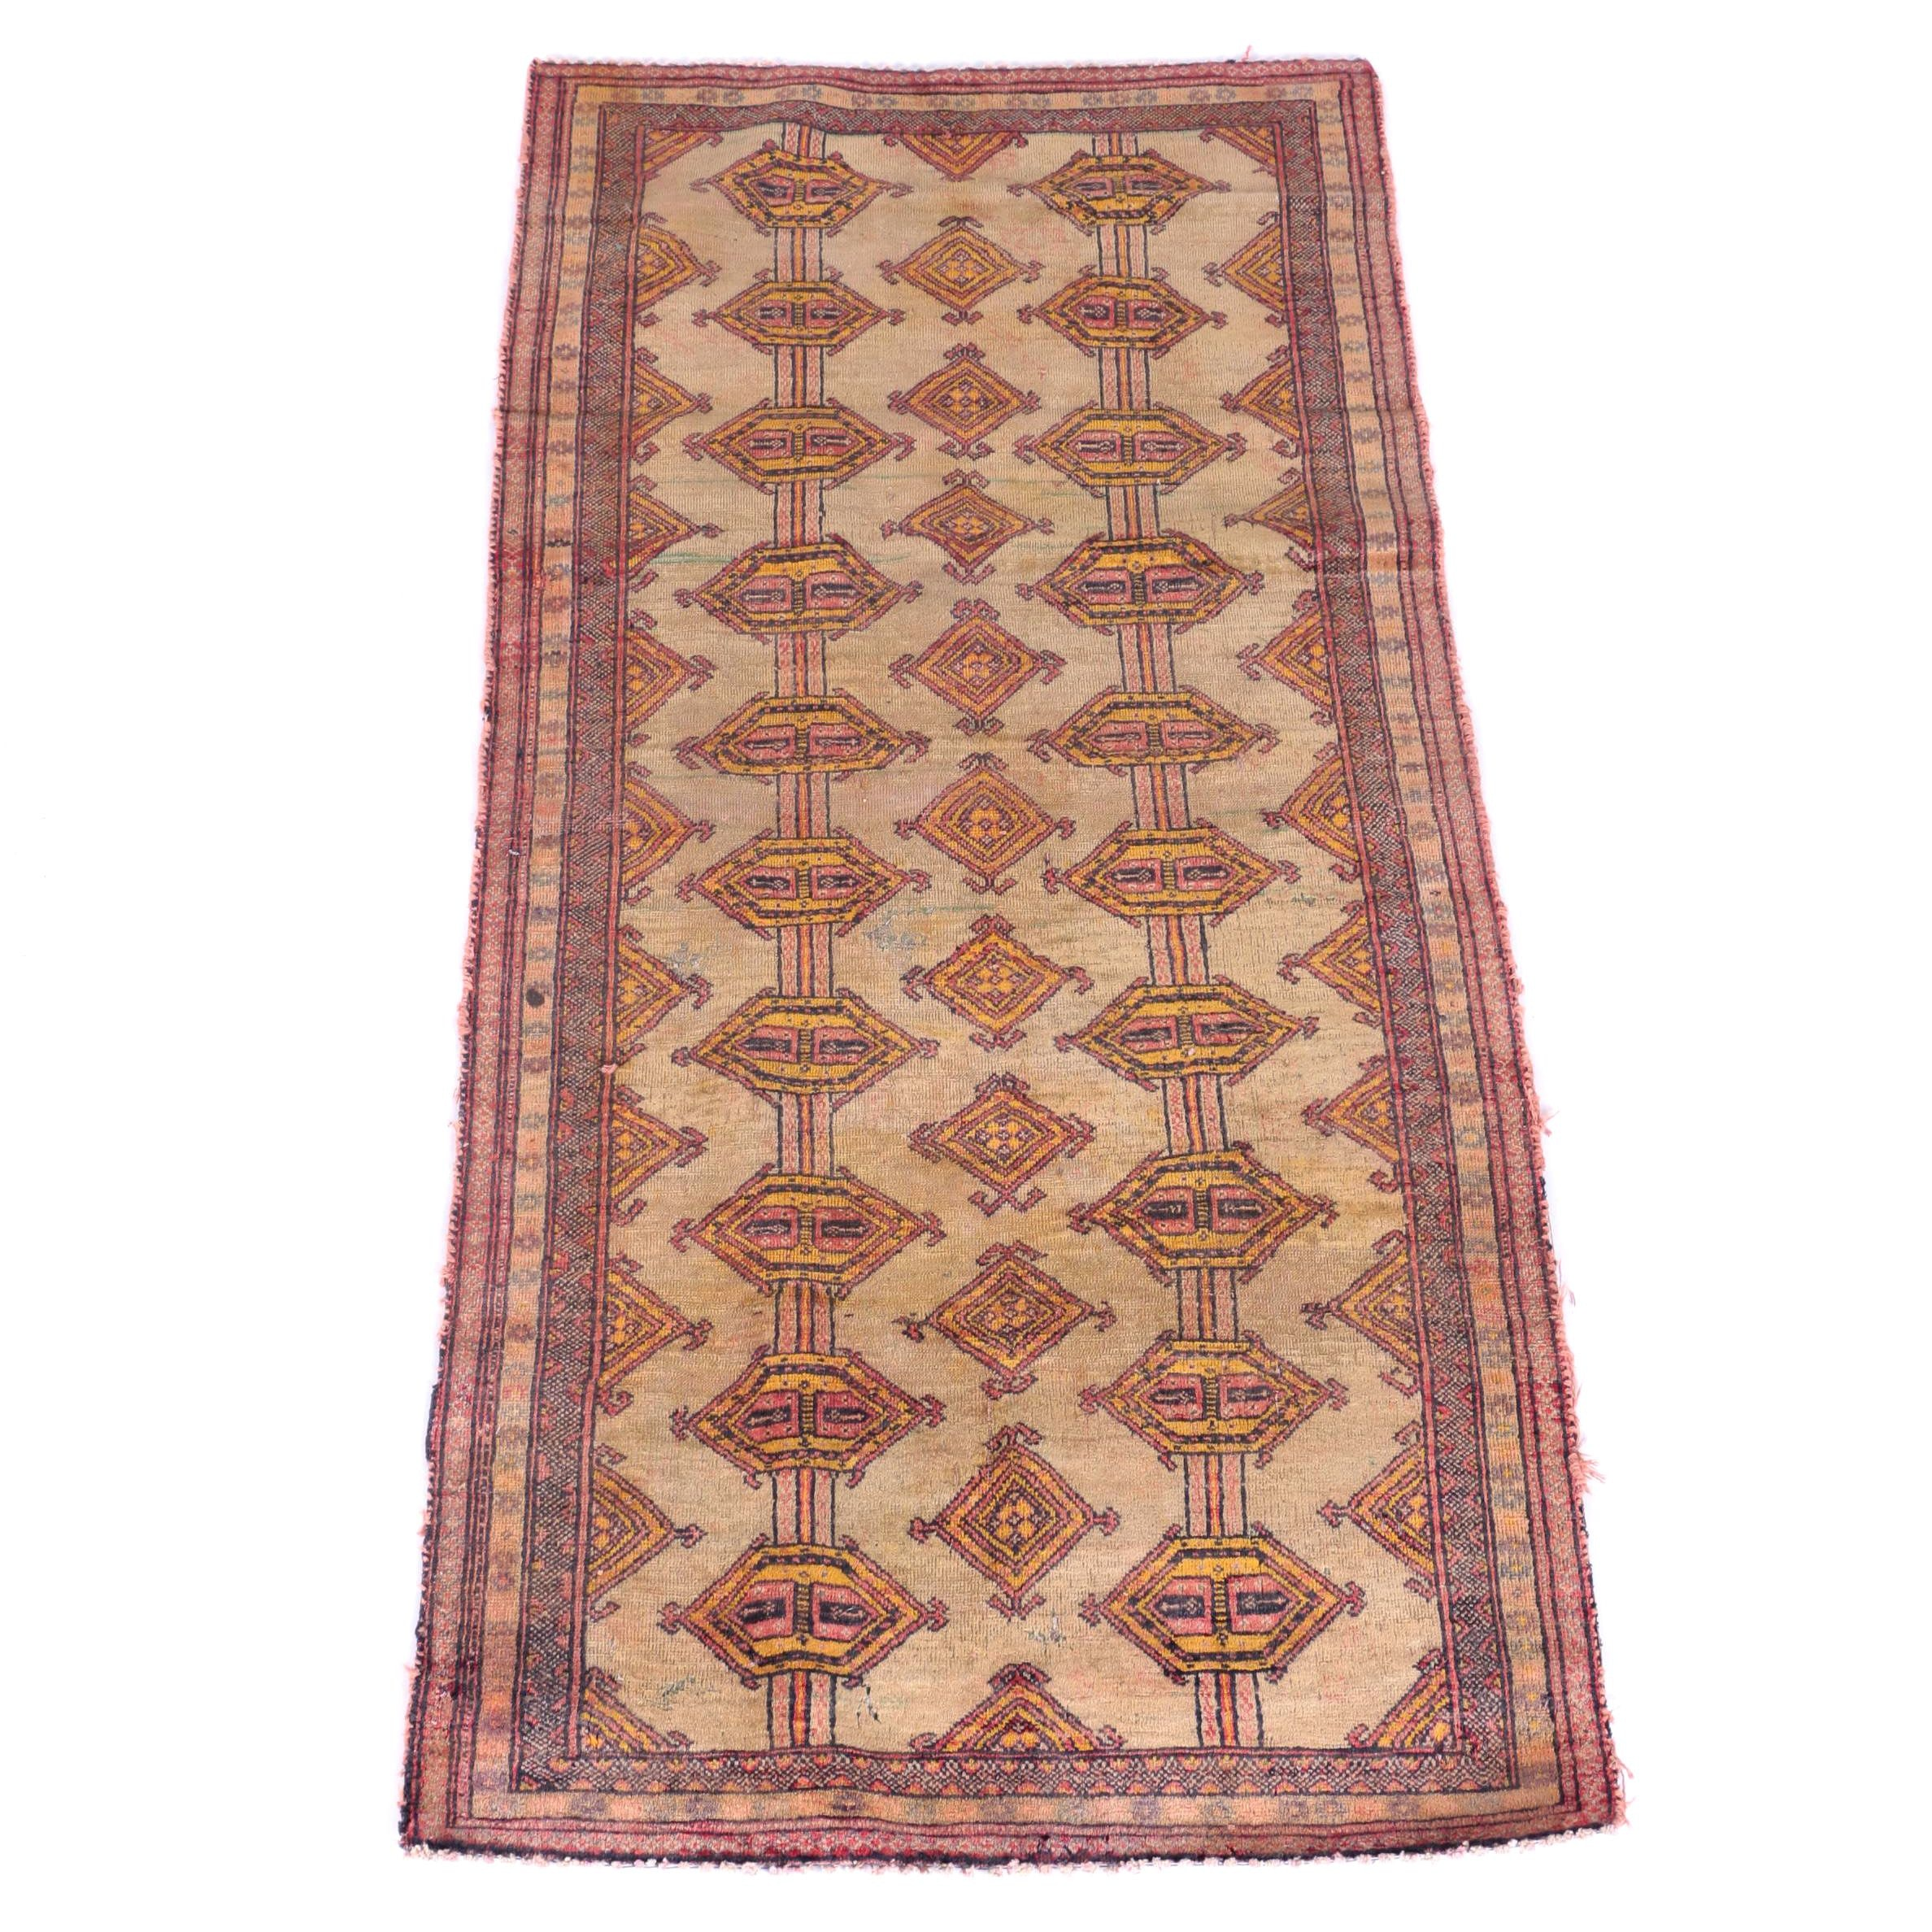 Hand-Knotted Indo-Bokhara Area Rug